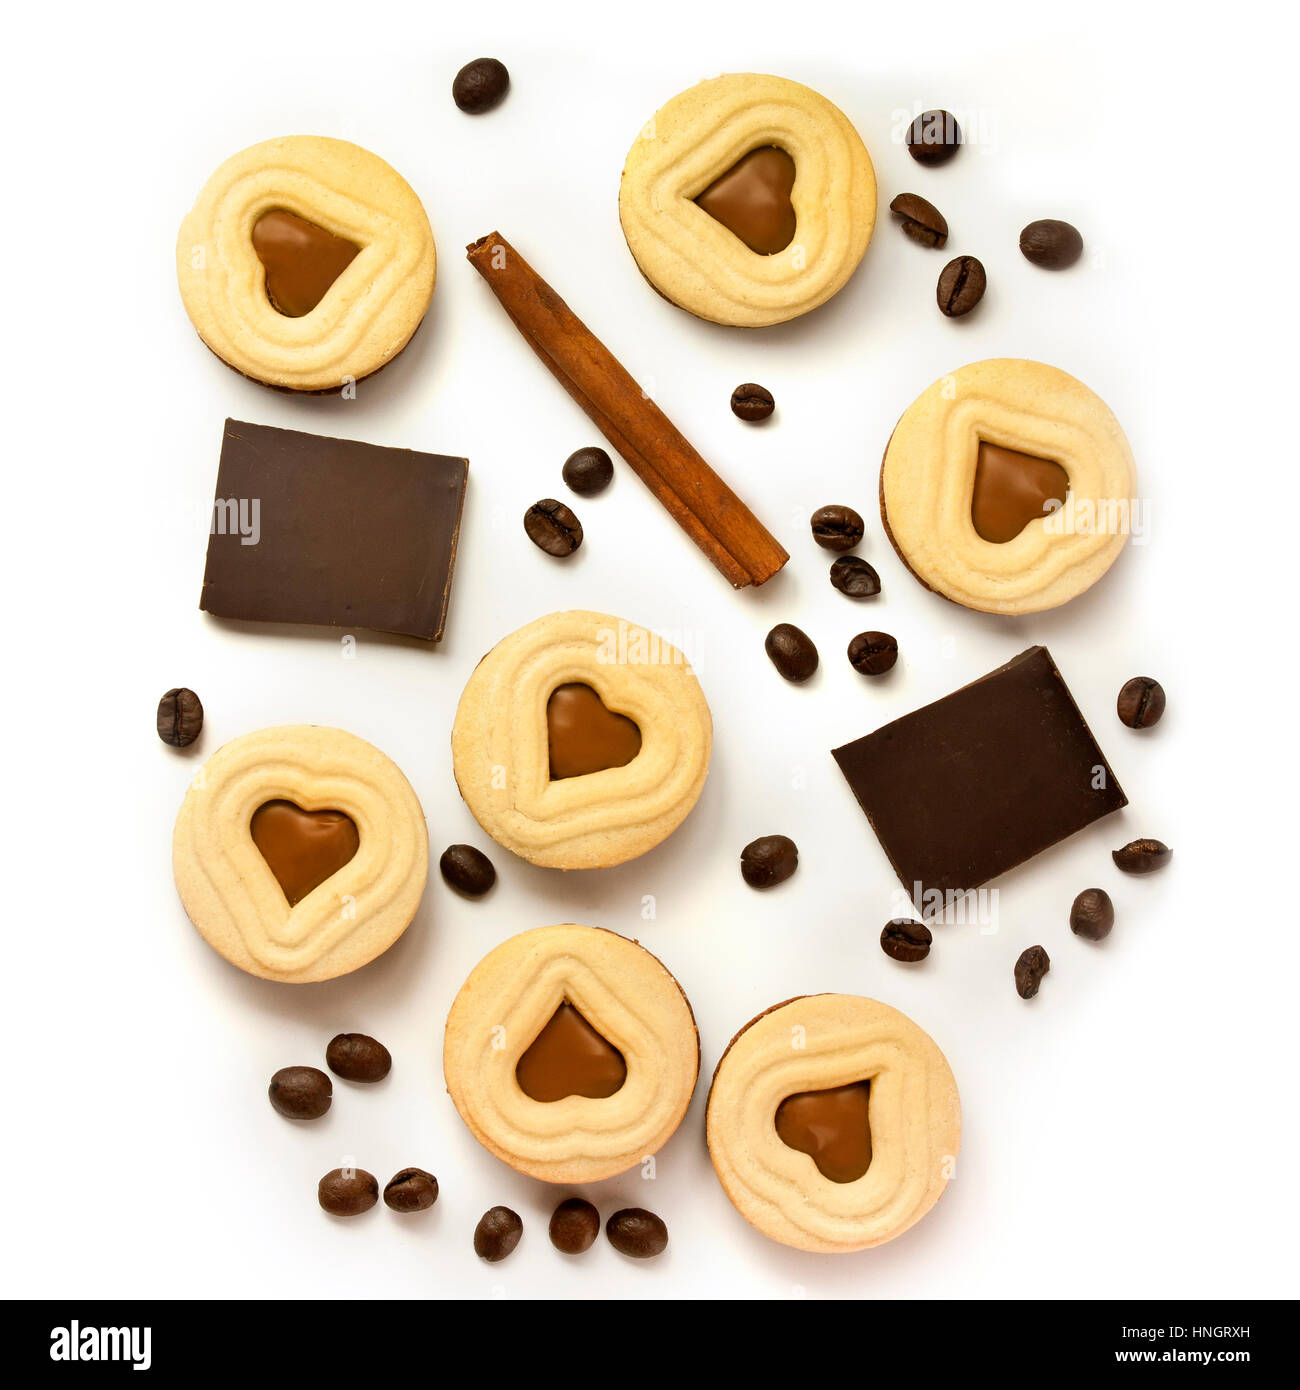 A square photo of pieces of chocolate, cocoa cookies with heart-shaped fillings, coffee beans and a cinnamon stick, - Stock Image